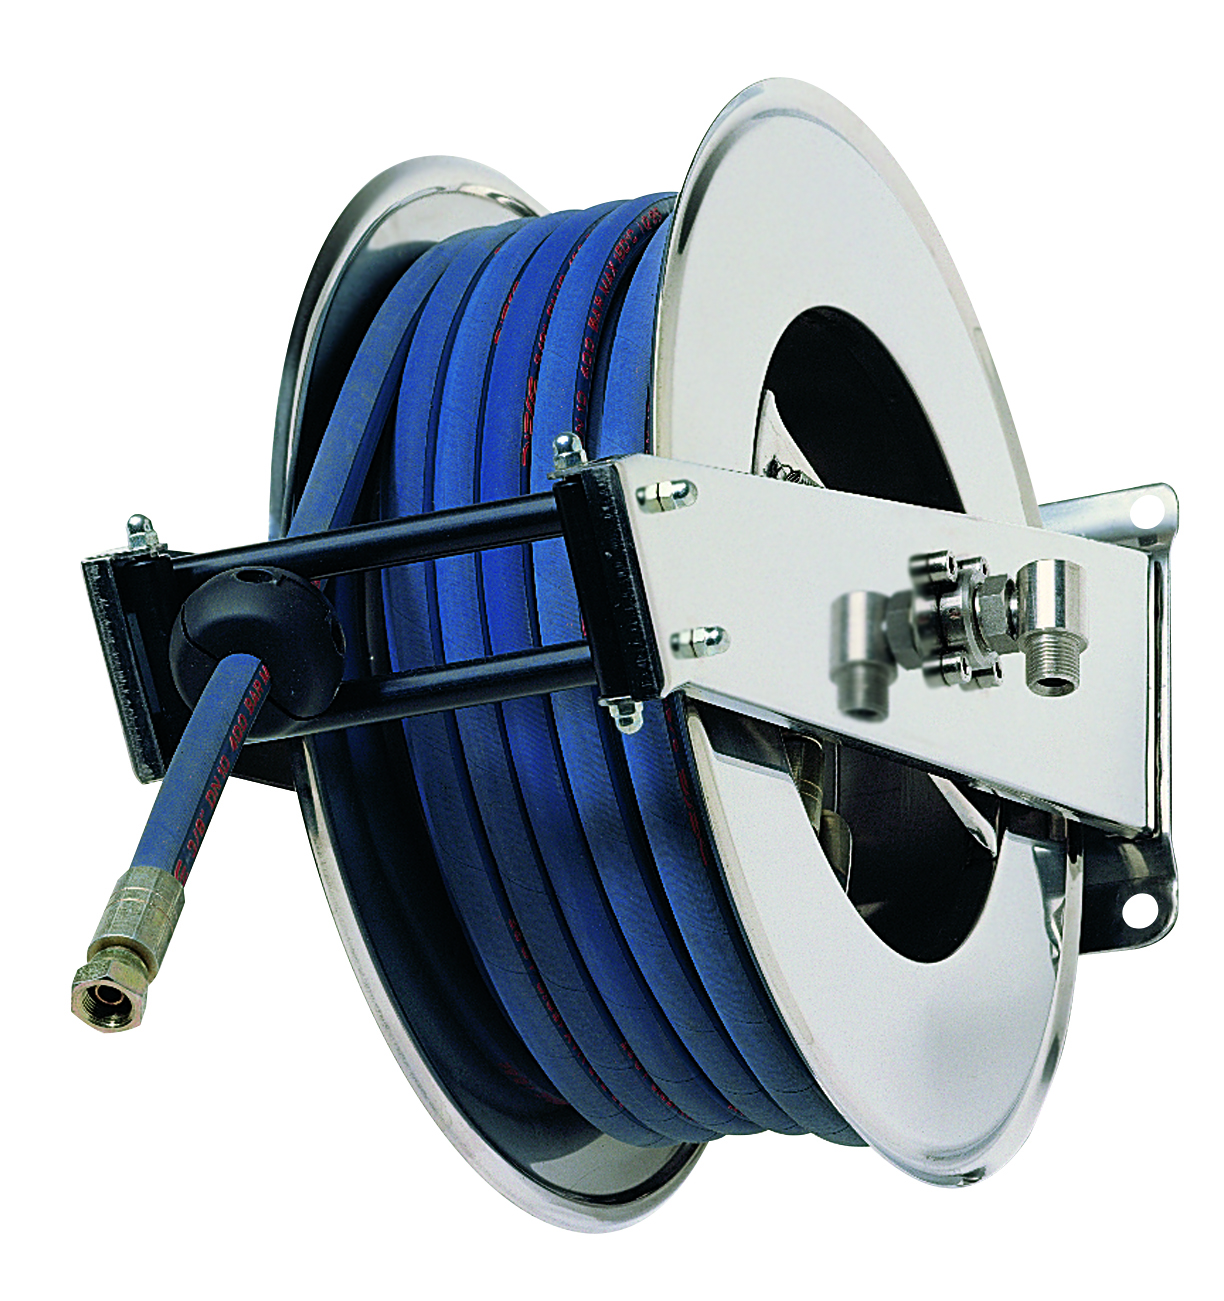 AV2000 600 - Hose reels for Water - High Pressure up to 600 BAR/8700 PSI